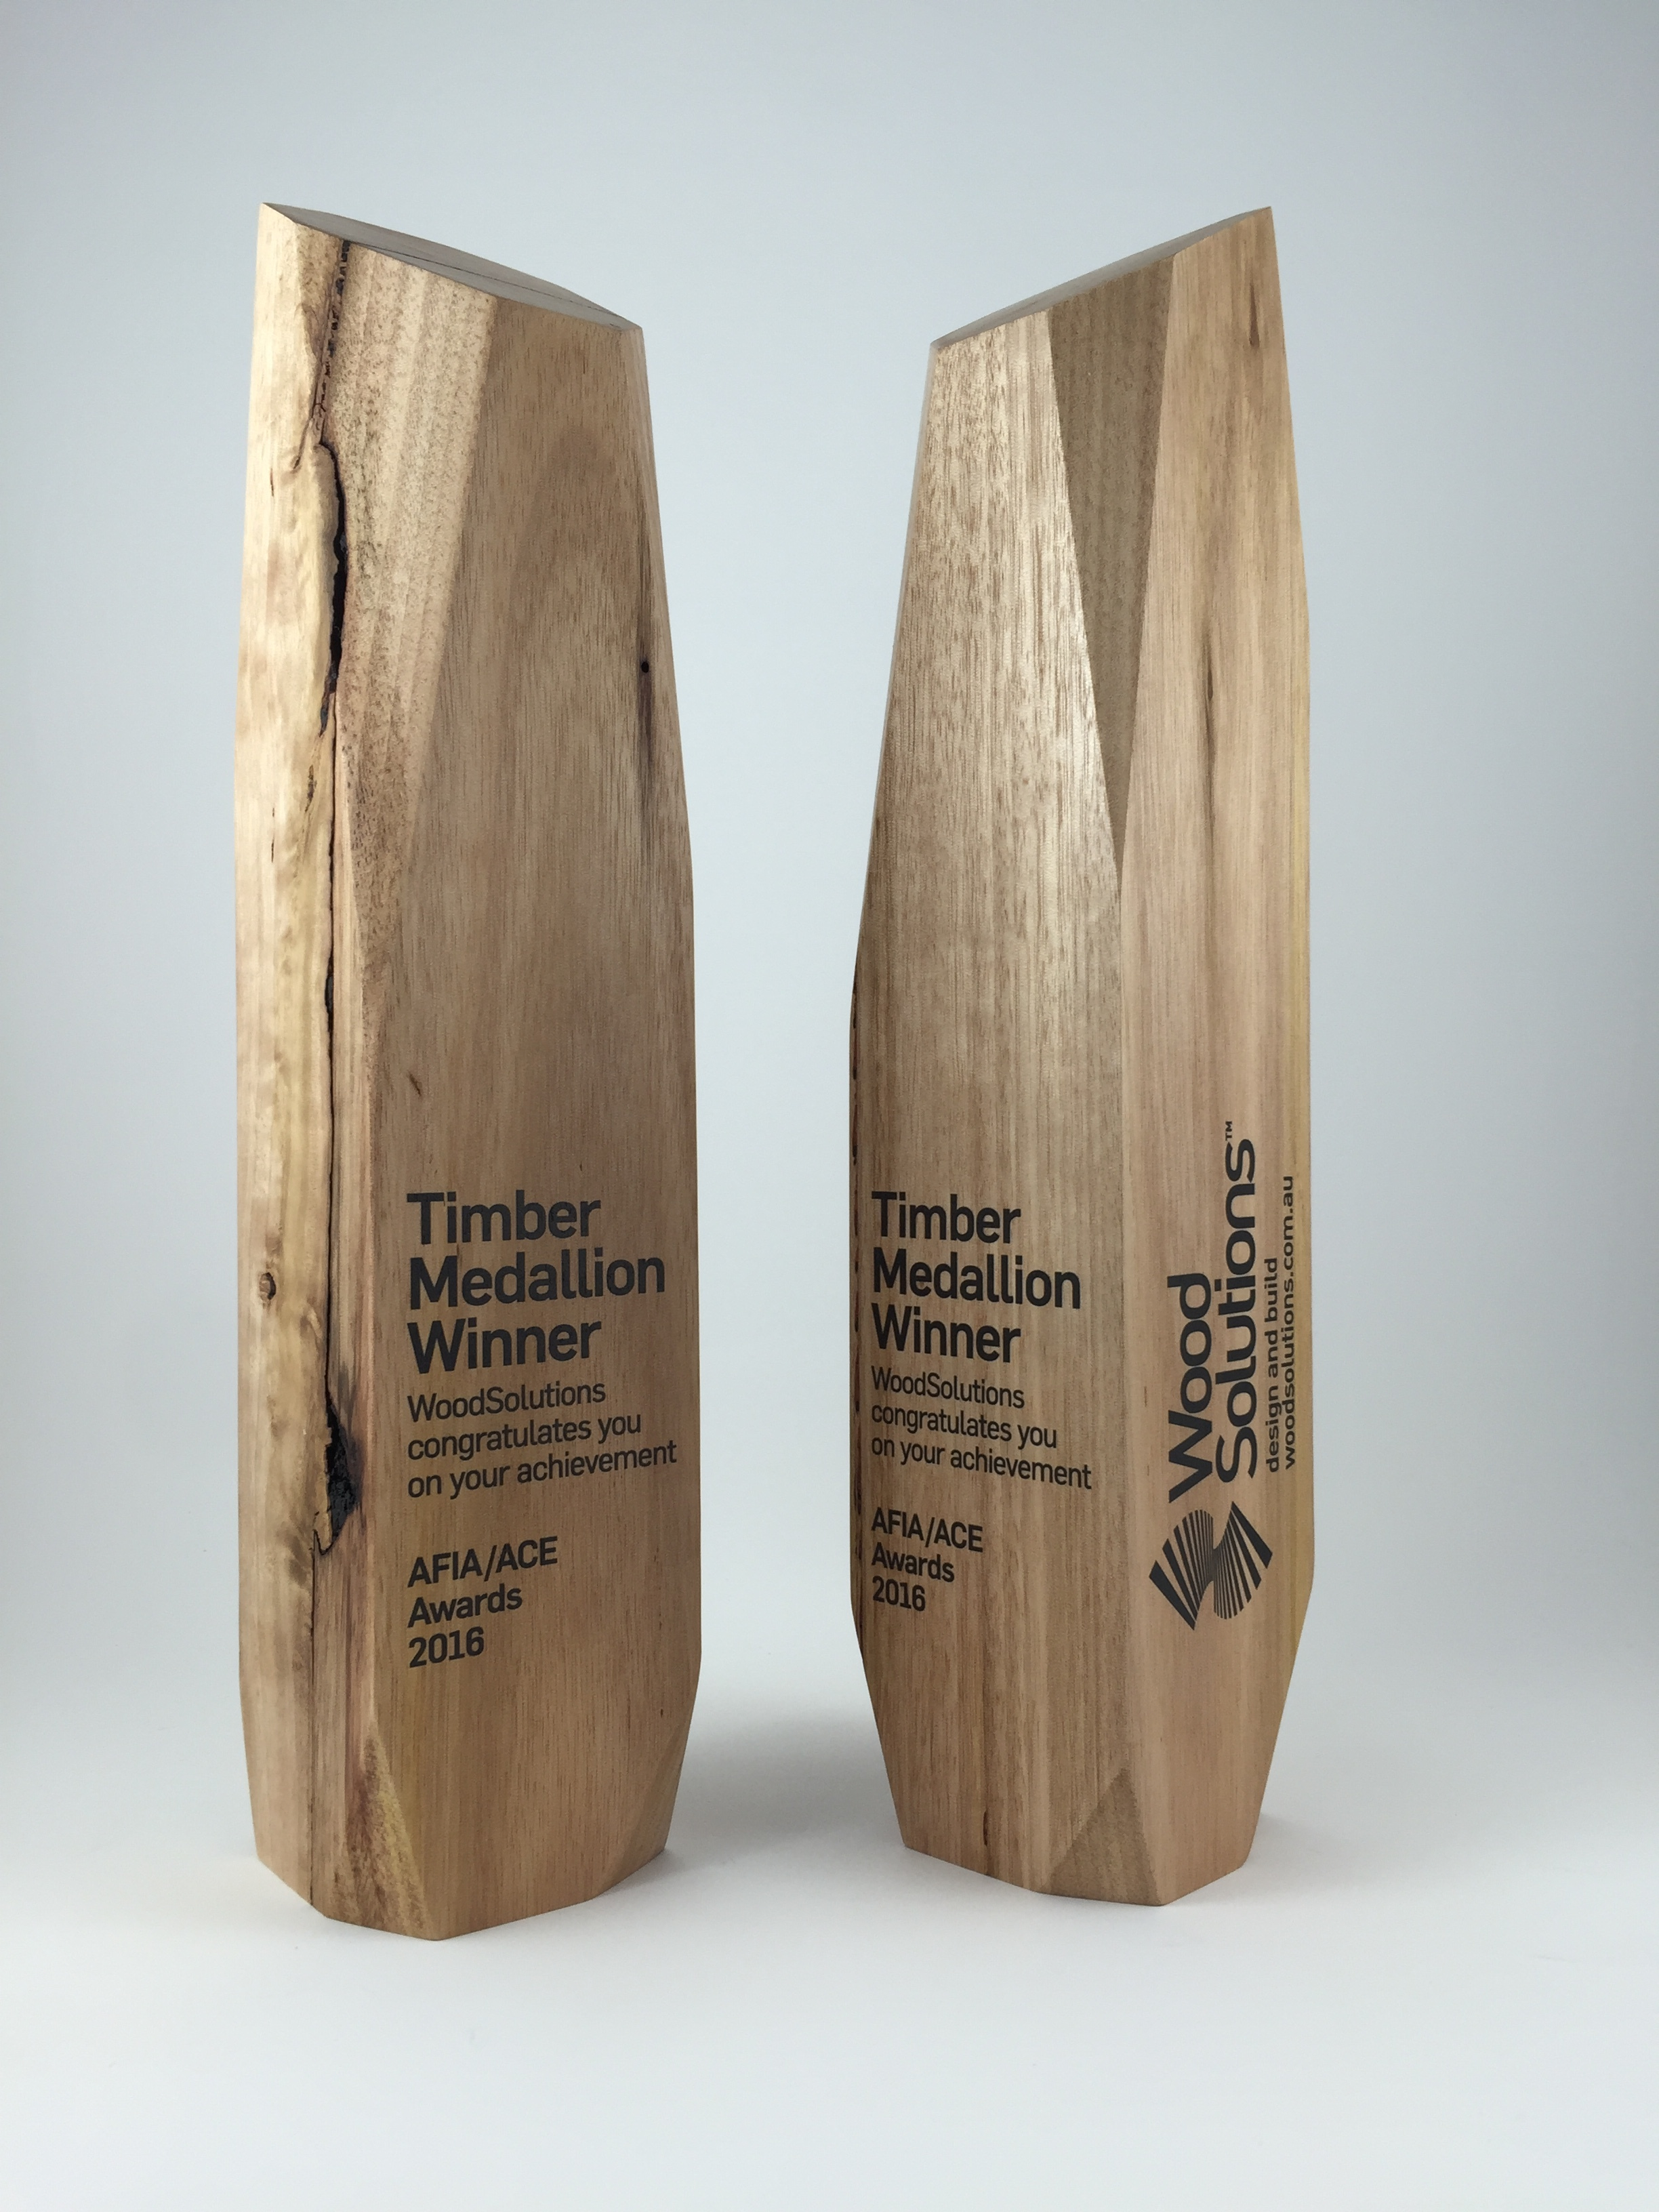 Wood-solutions-timber-eco-trophy-awards-02.jpg